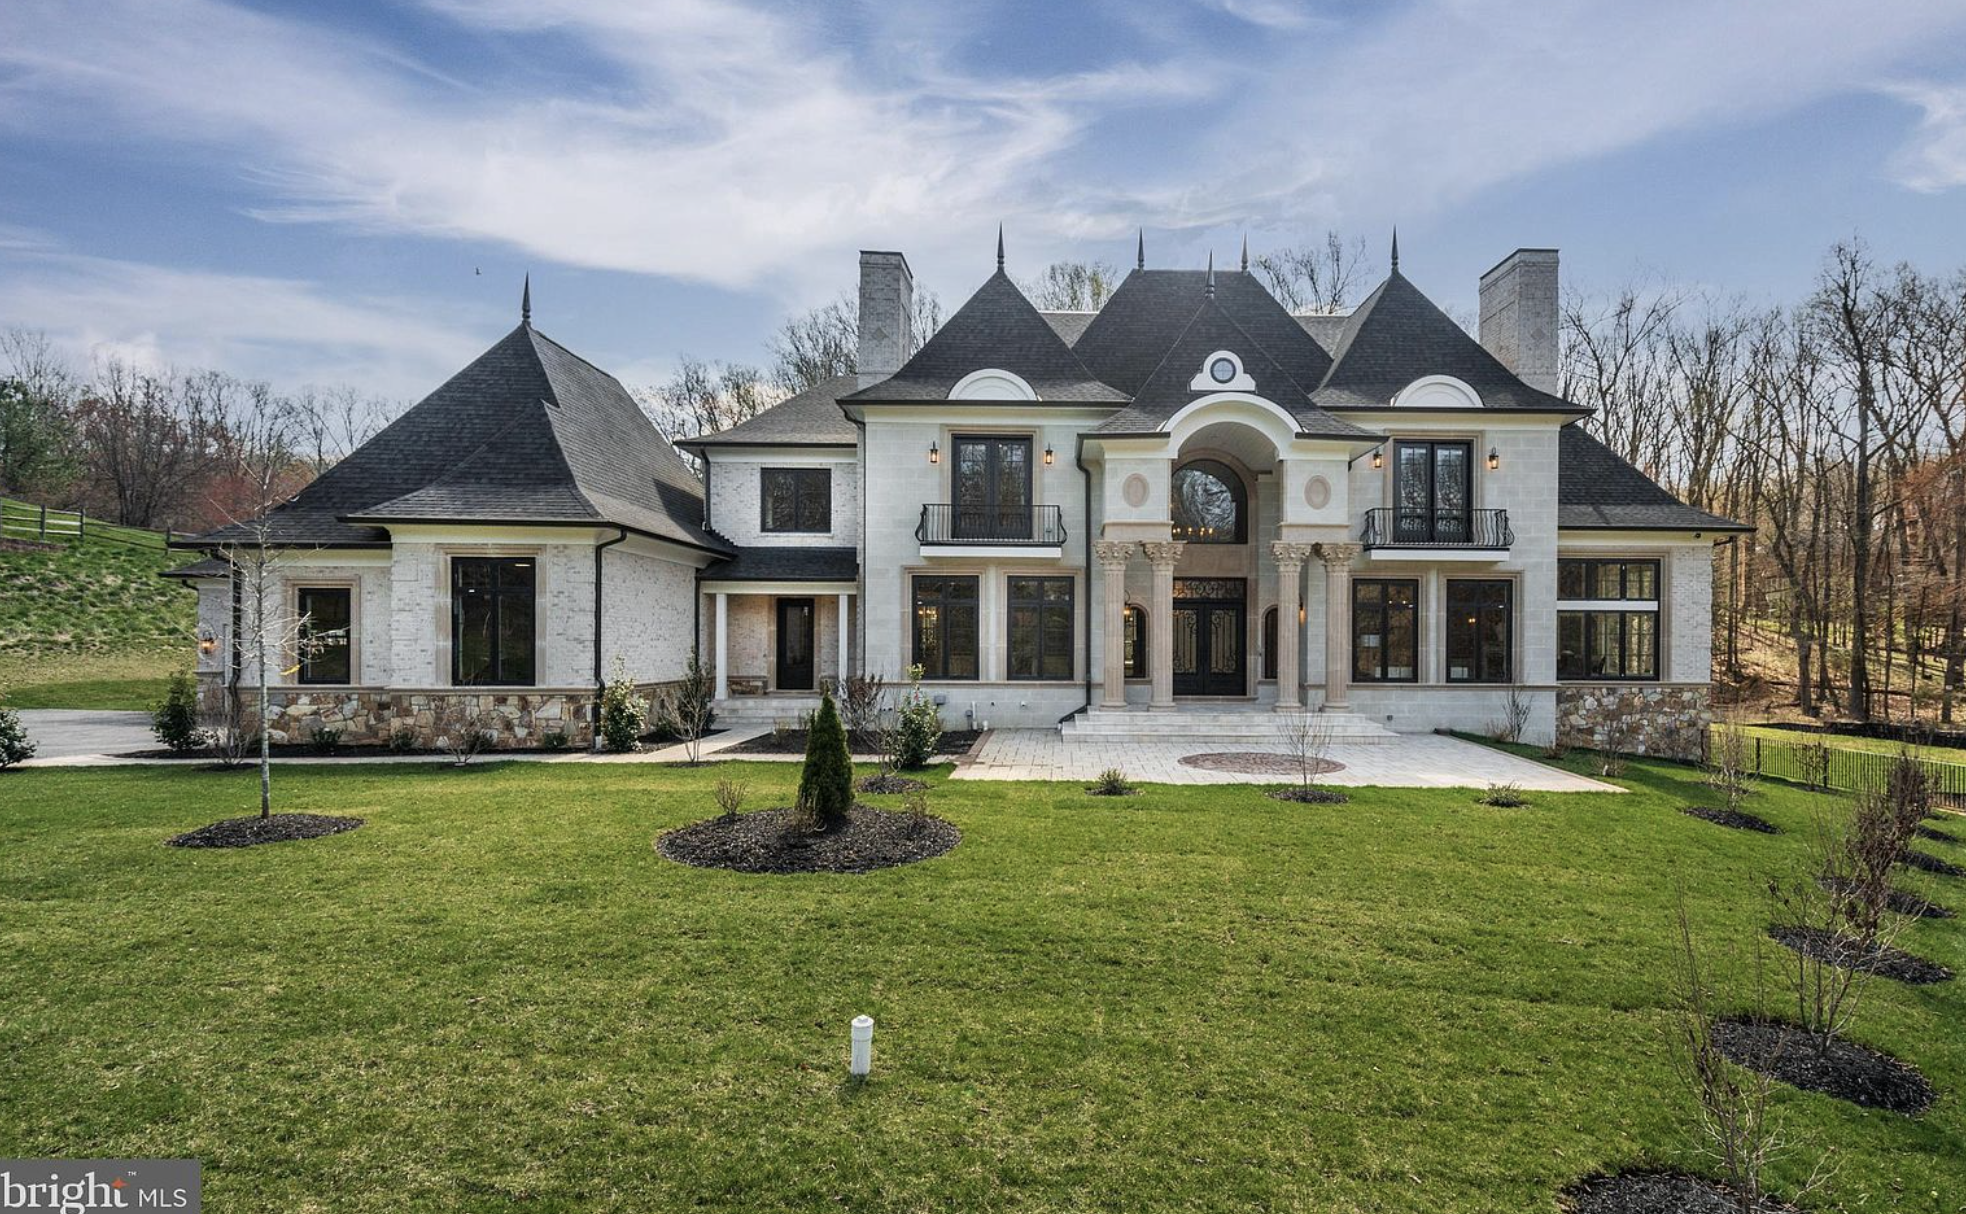 11,000 Square Foot French Style Brick New Build In McLean, Virginia